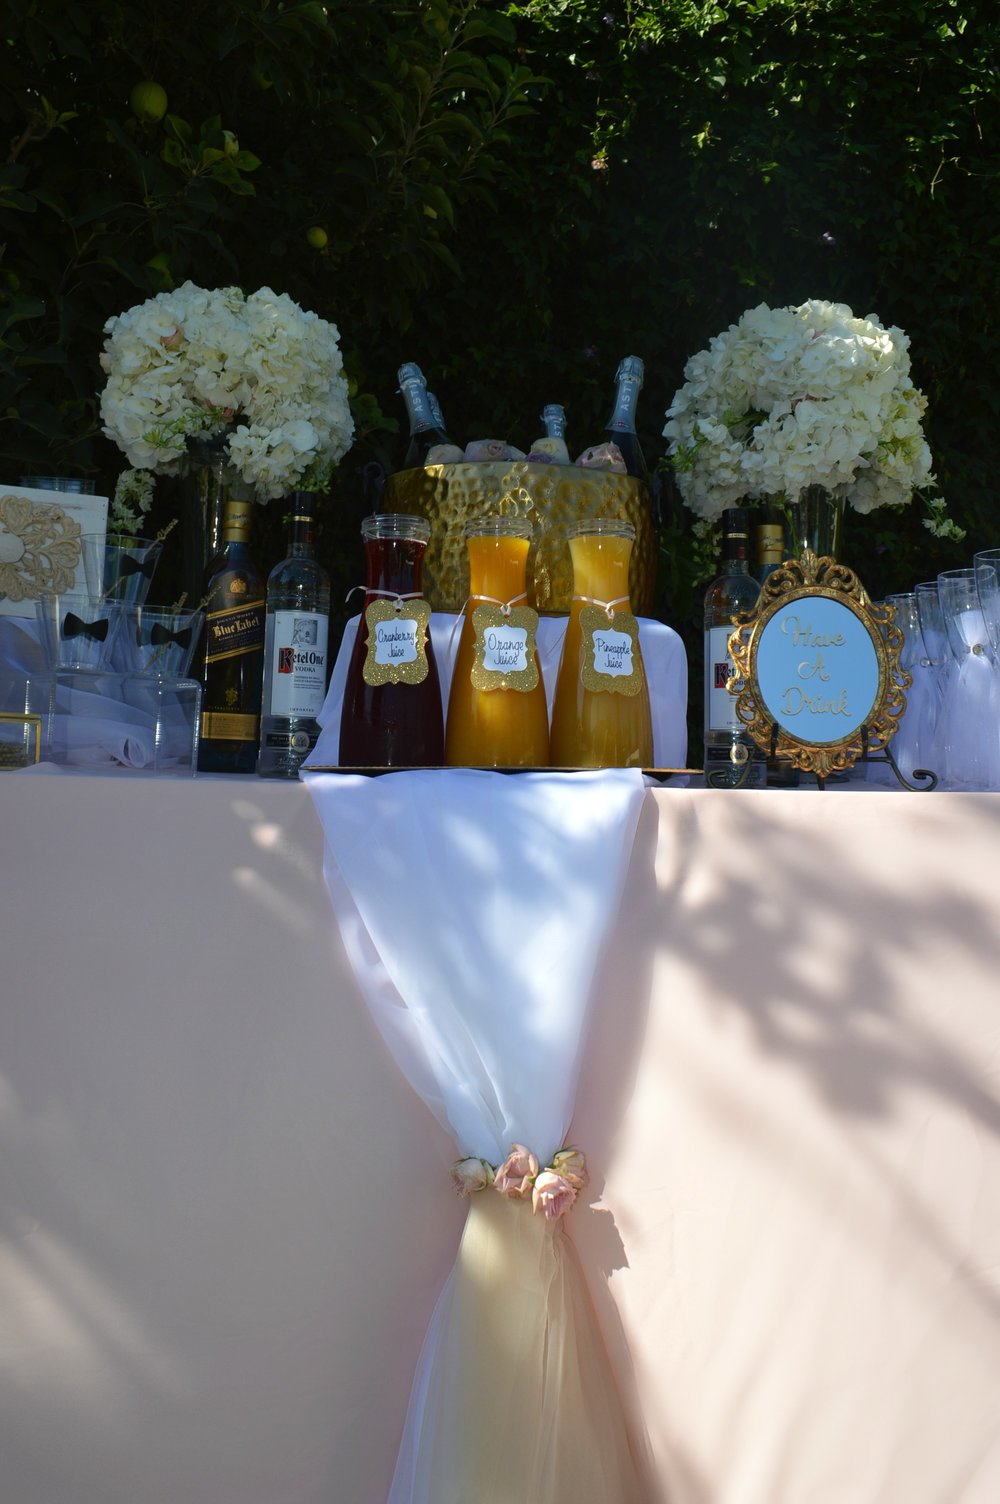 Summer wedding-Spring wedding-garden wedding-wedding ideas-wedding drink ideas-wedding drink station-backyard wedding-blush and gold wedding-www.SugarPartiesLA.com.jpg